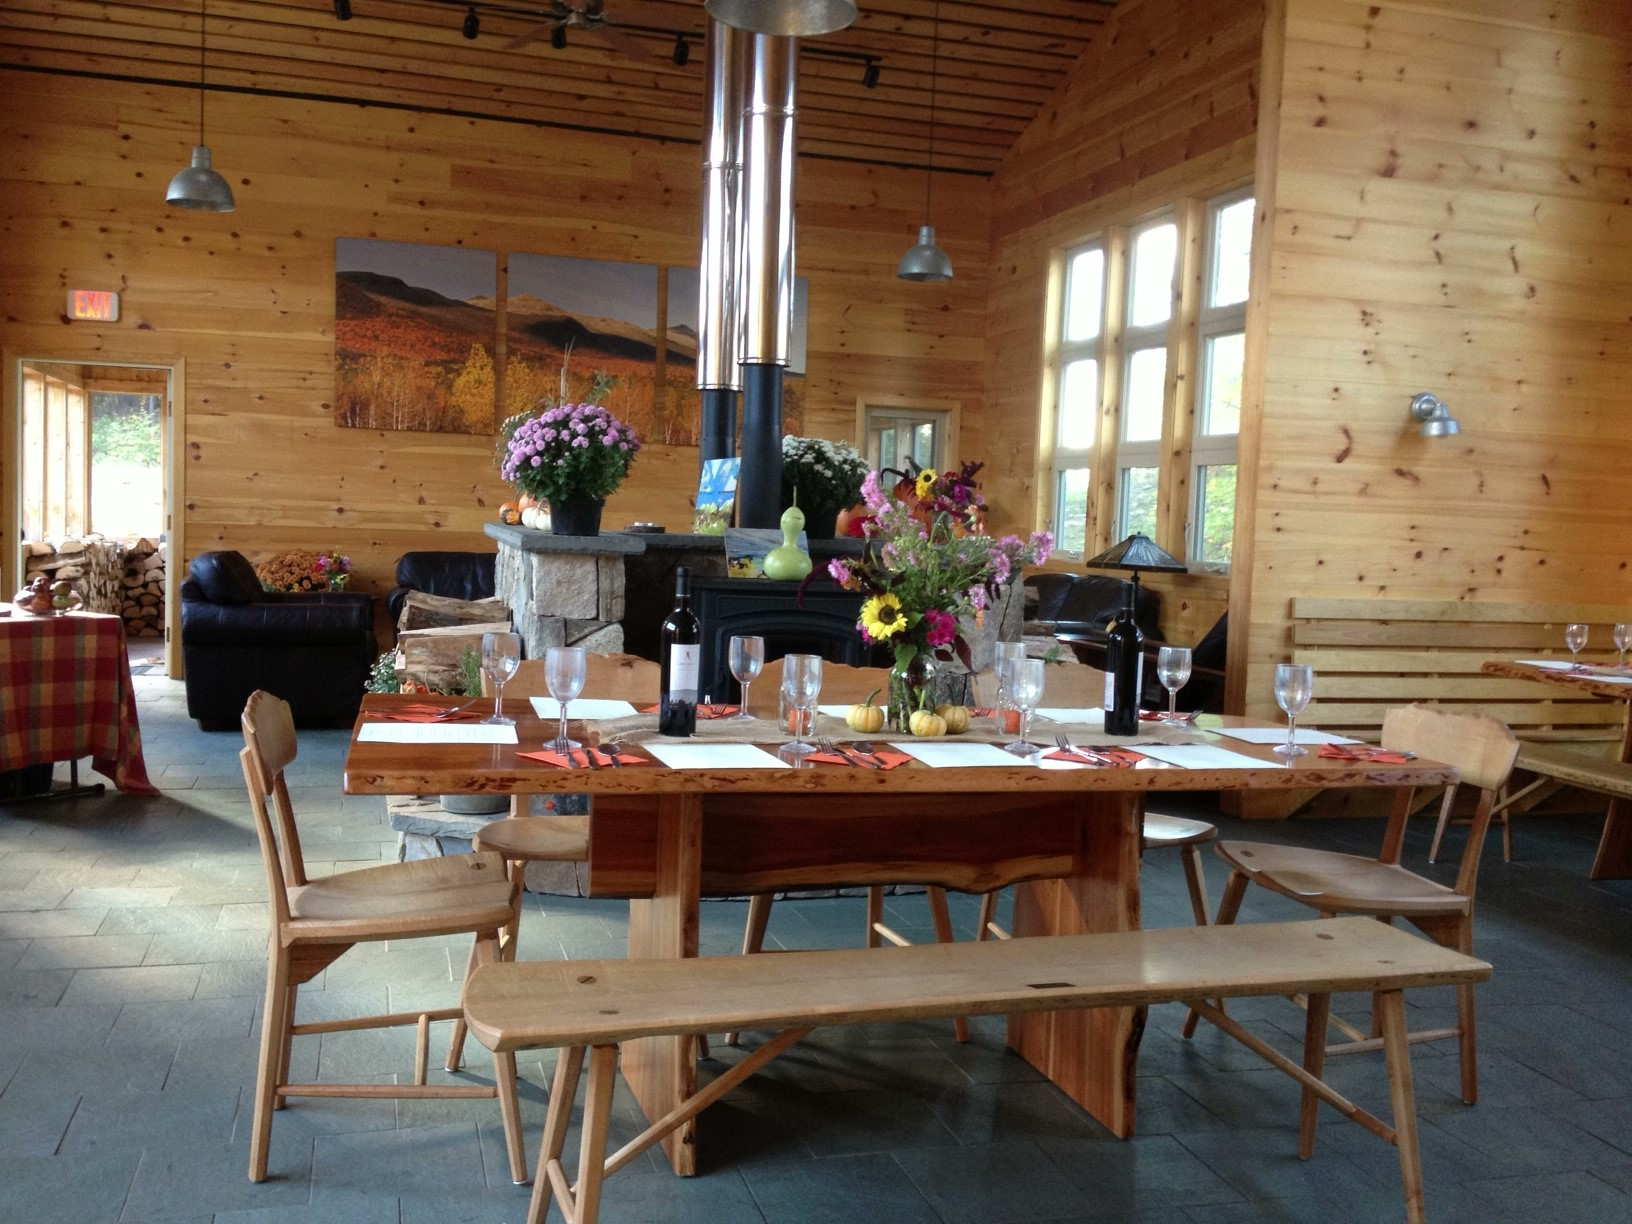 Maine Huts & Trails is celebrating Maine's harvest season with a farm-to-hut dining experience at the Stratton Brook Hut.  Credit: Maine Huts & Trails